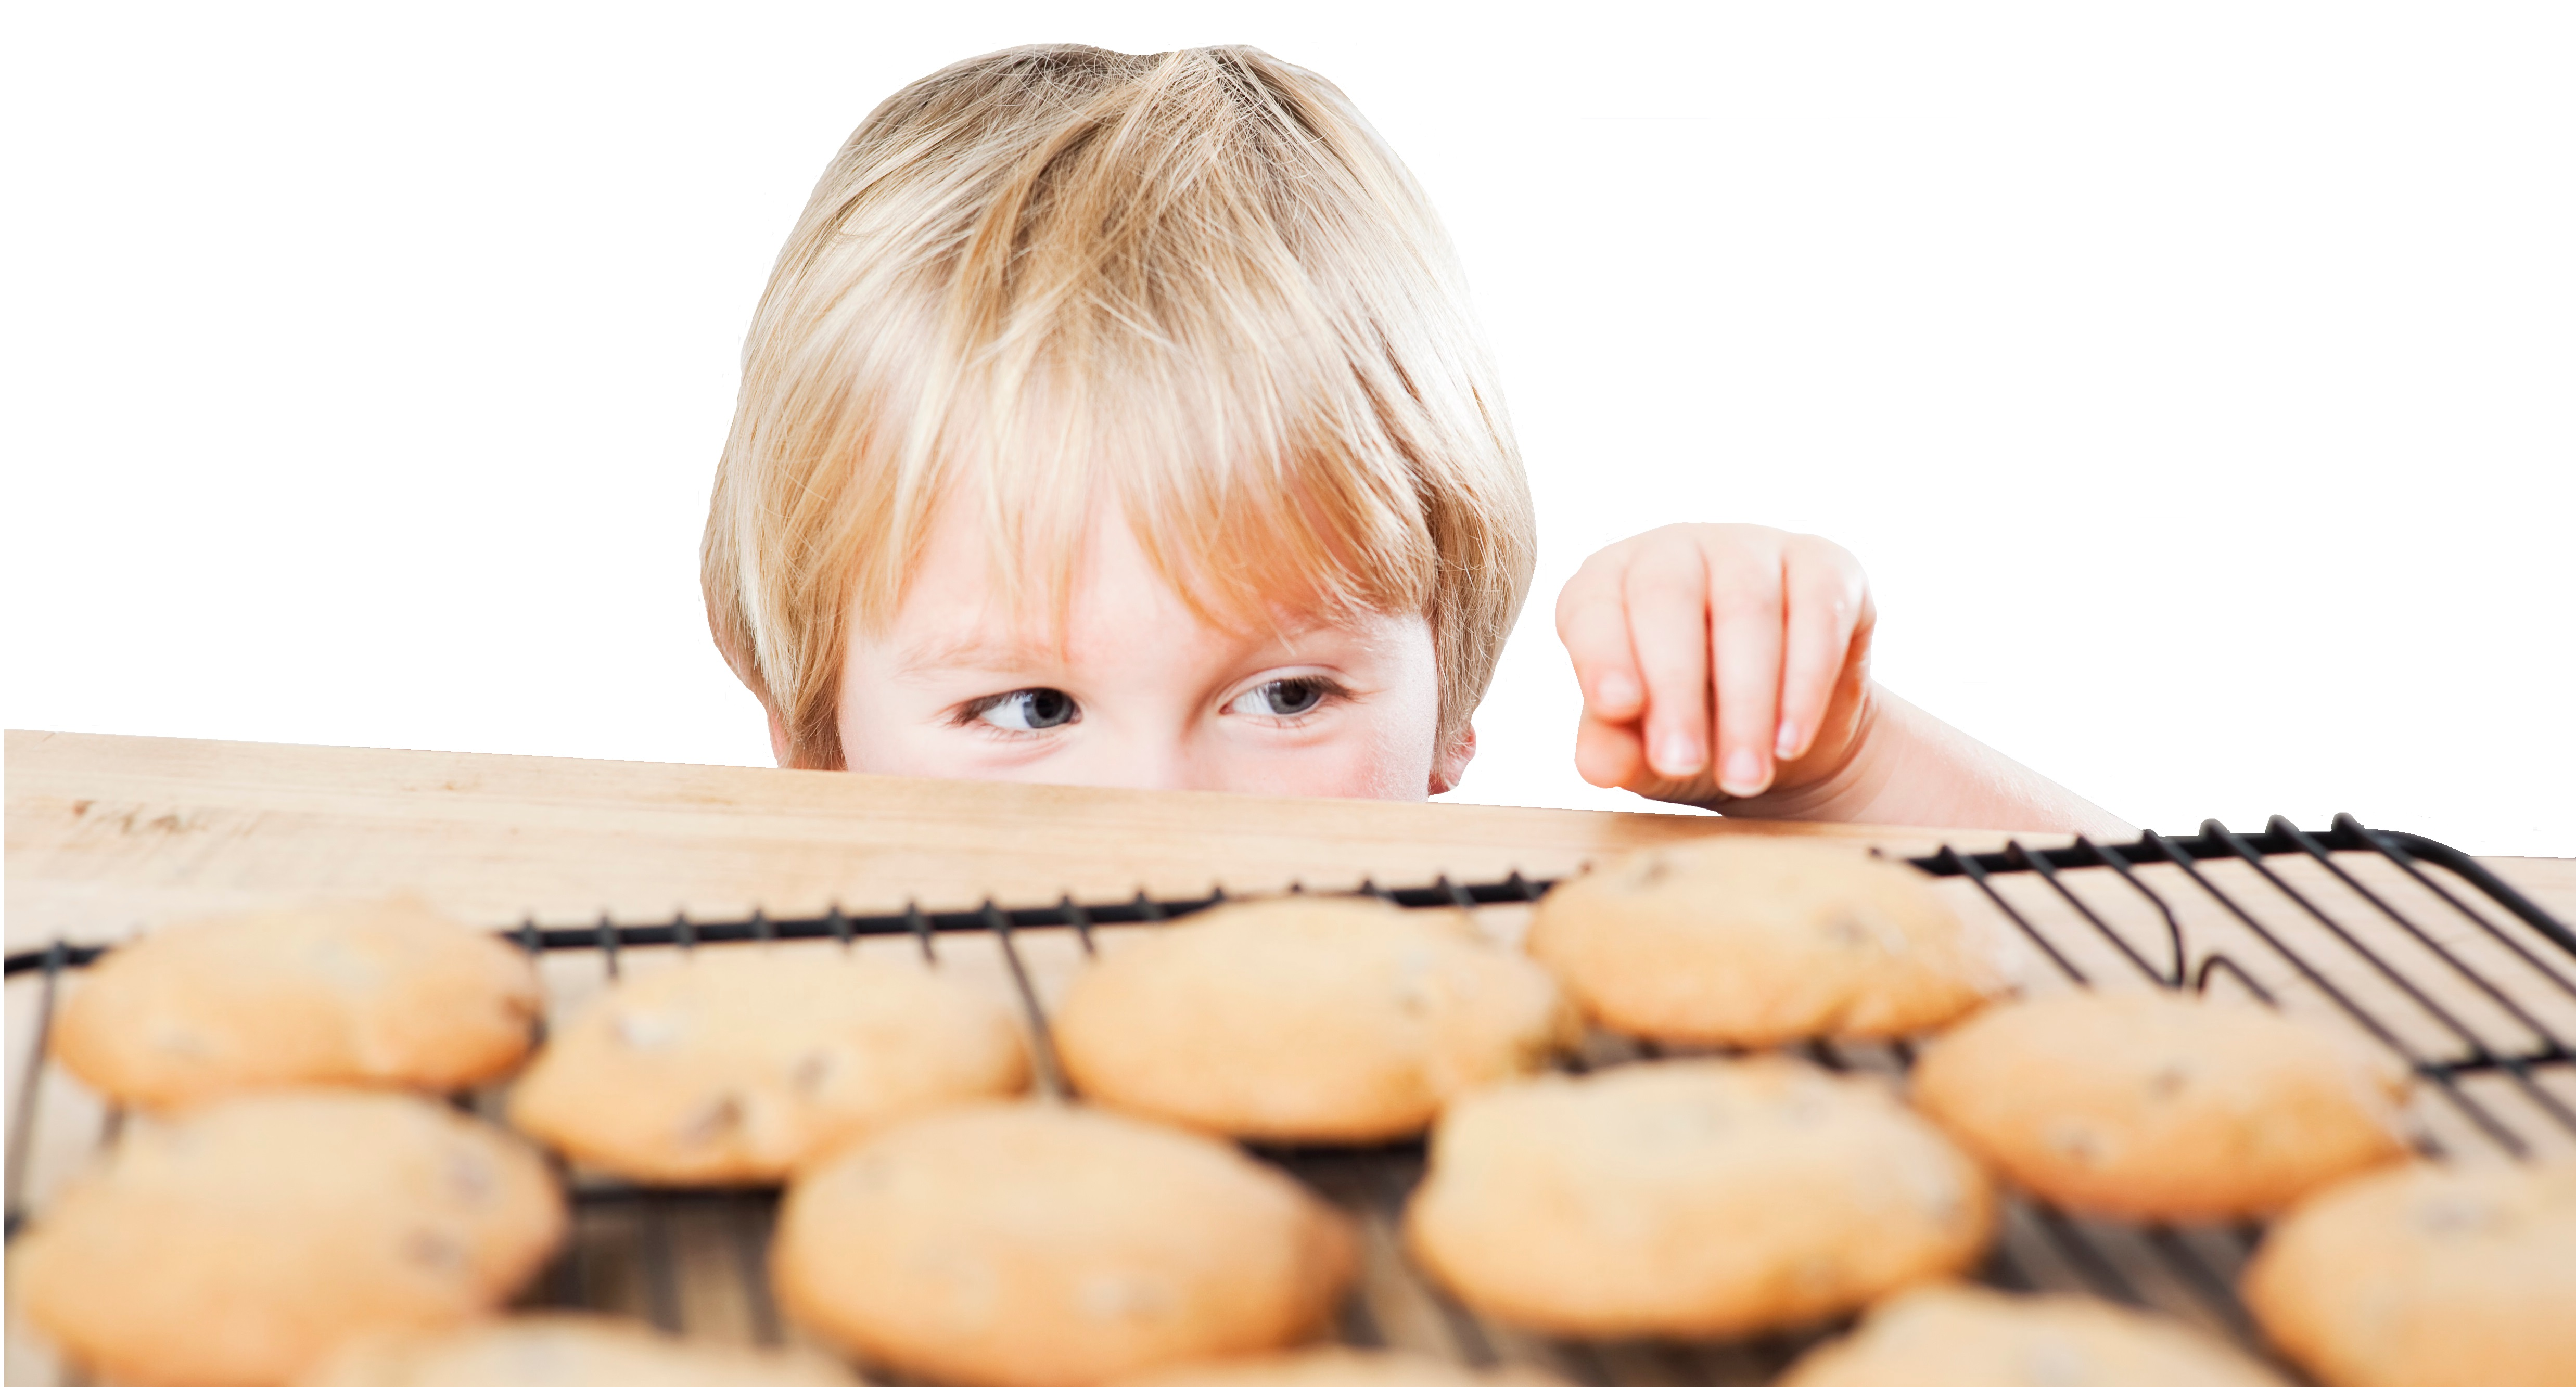 Boy eyeing freshly baked cookies